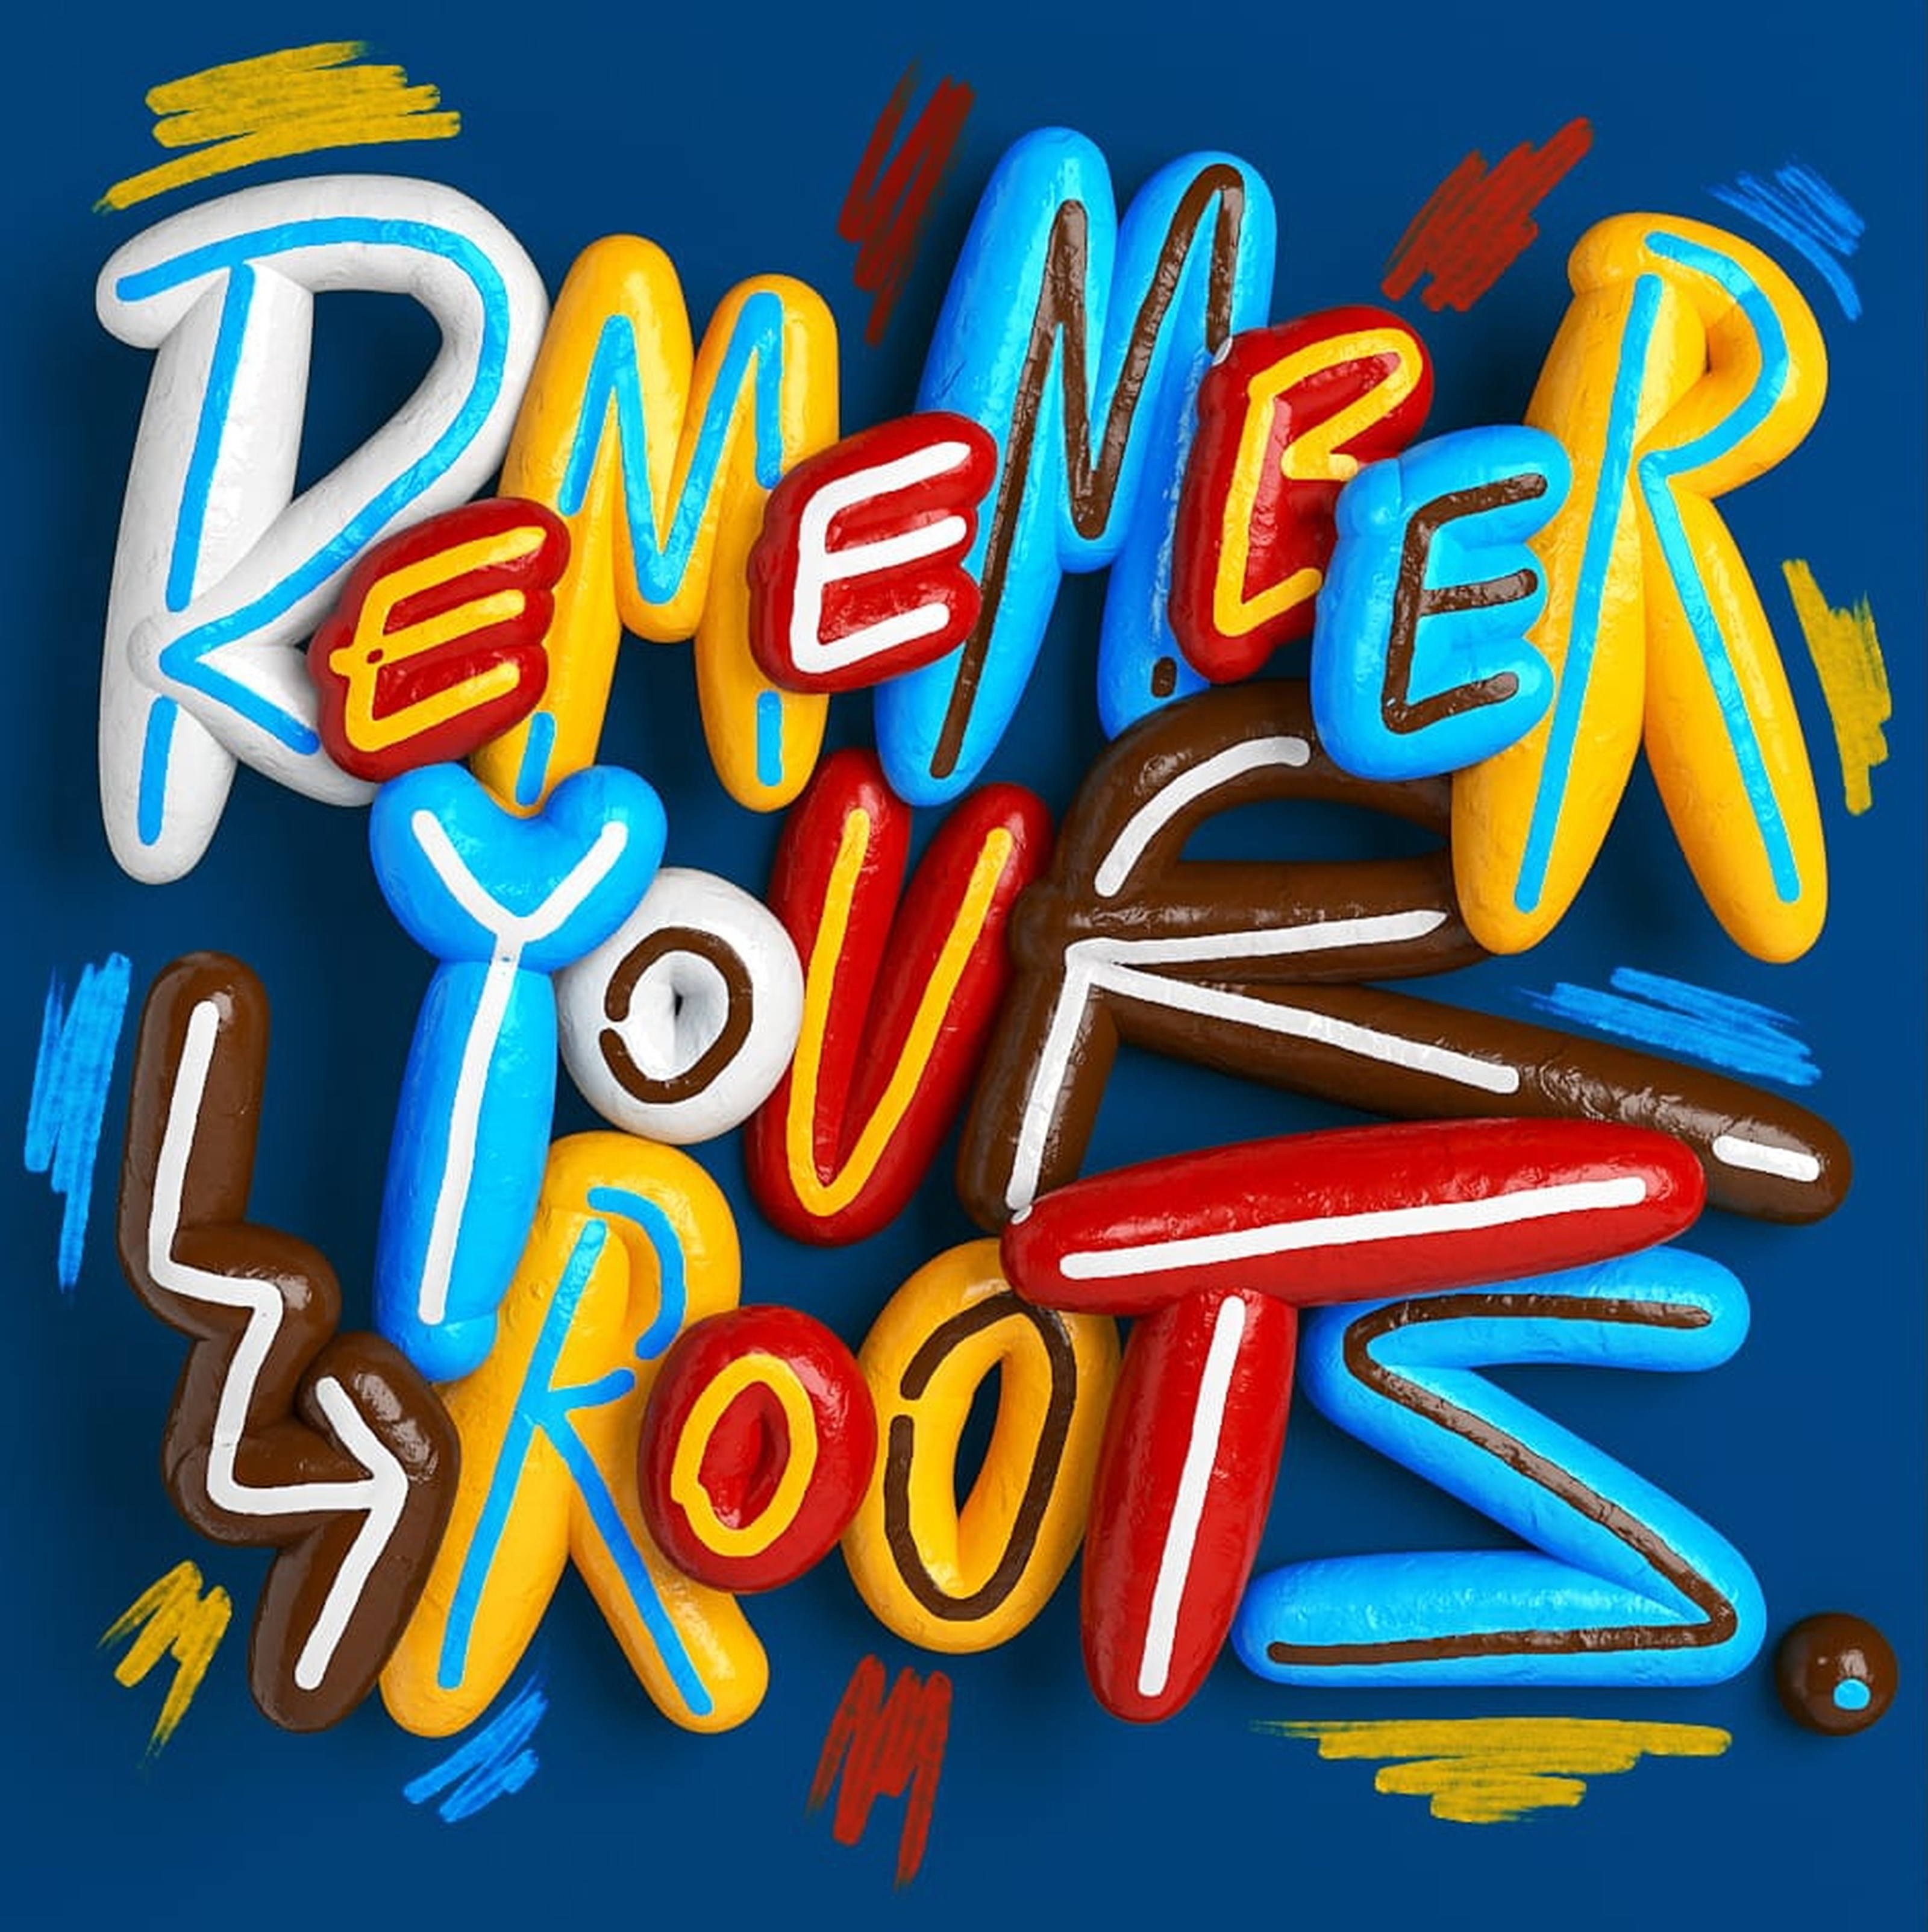 Rememberyourroots 2